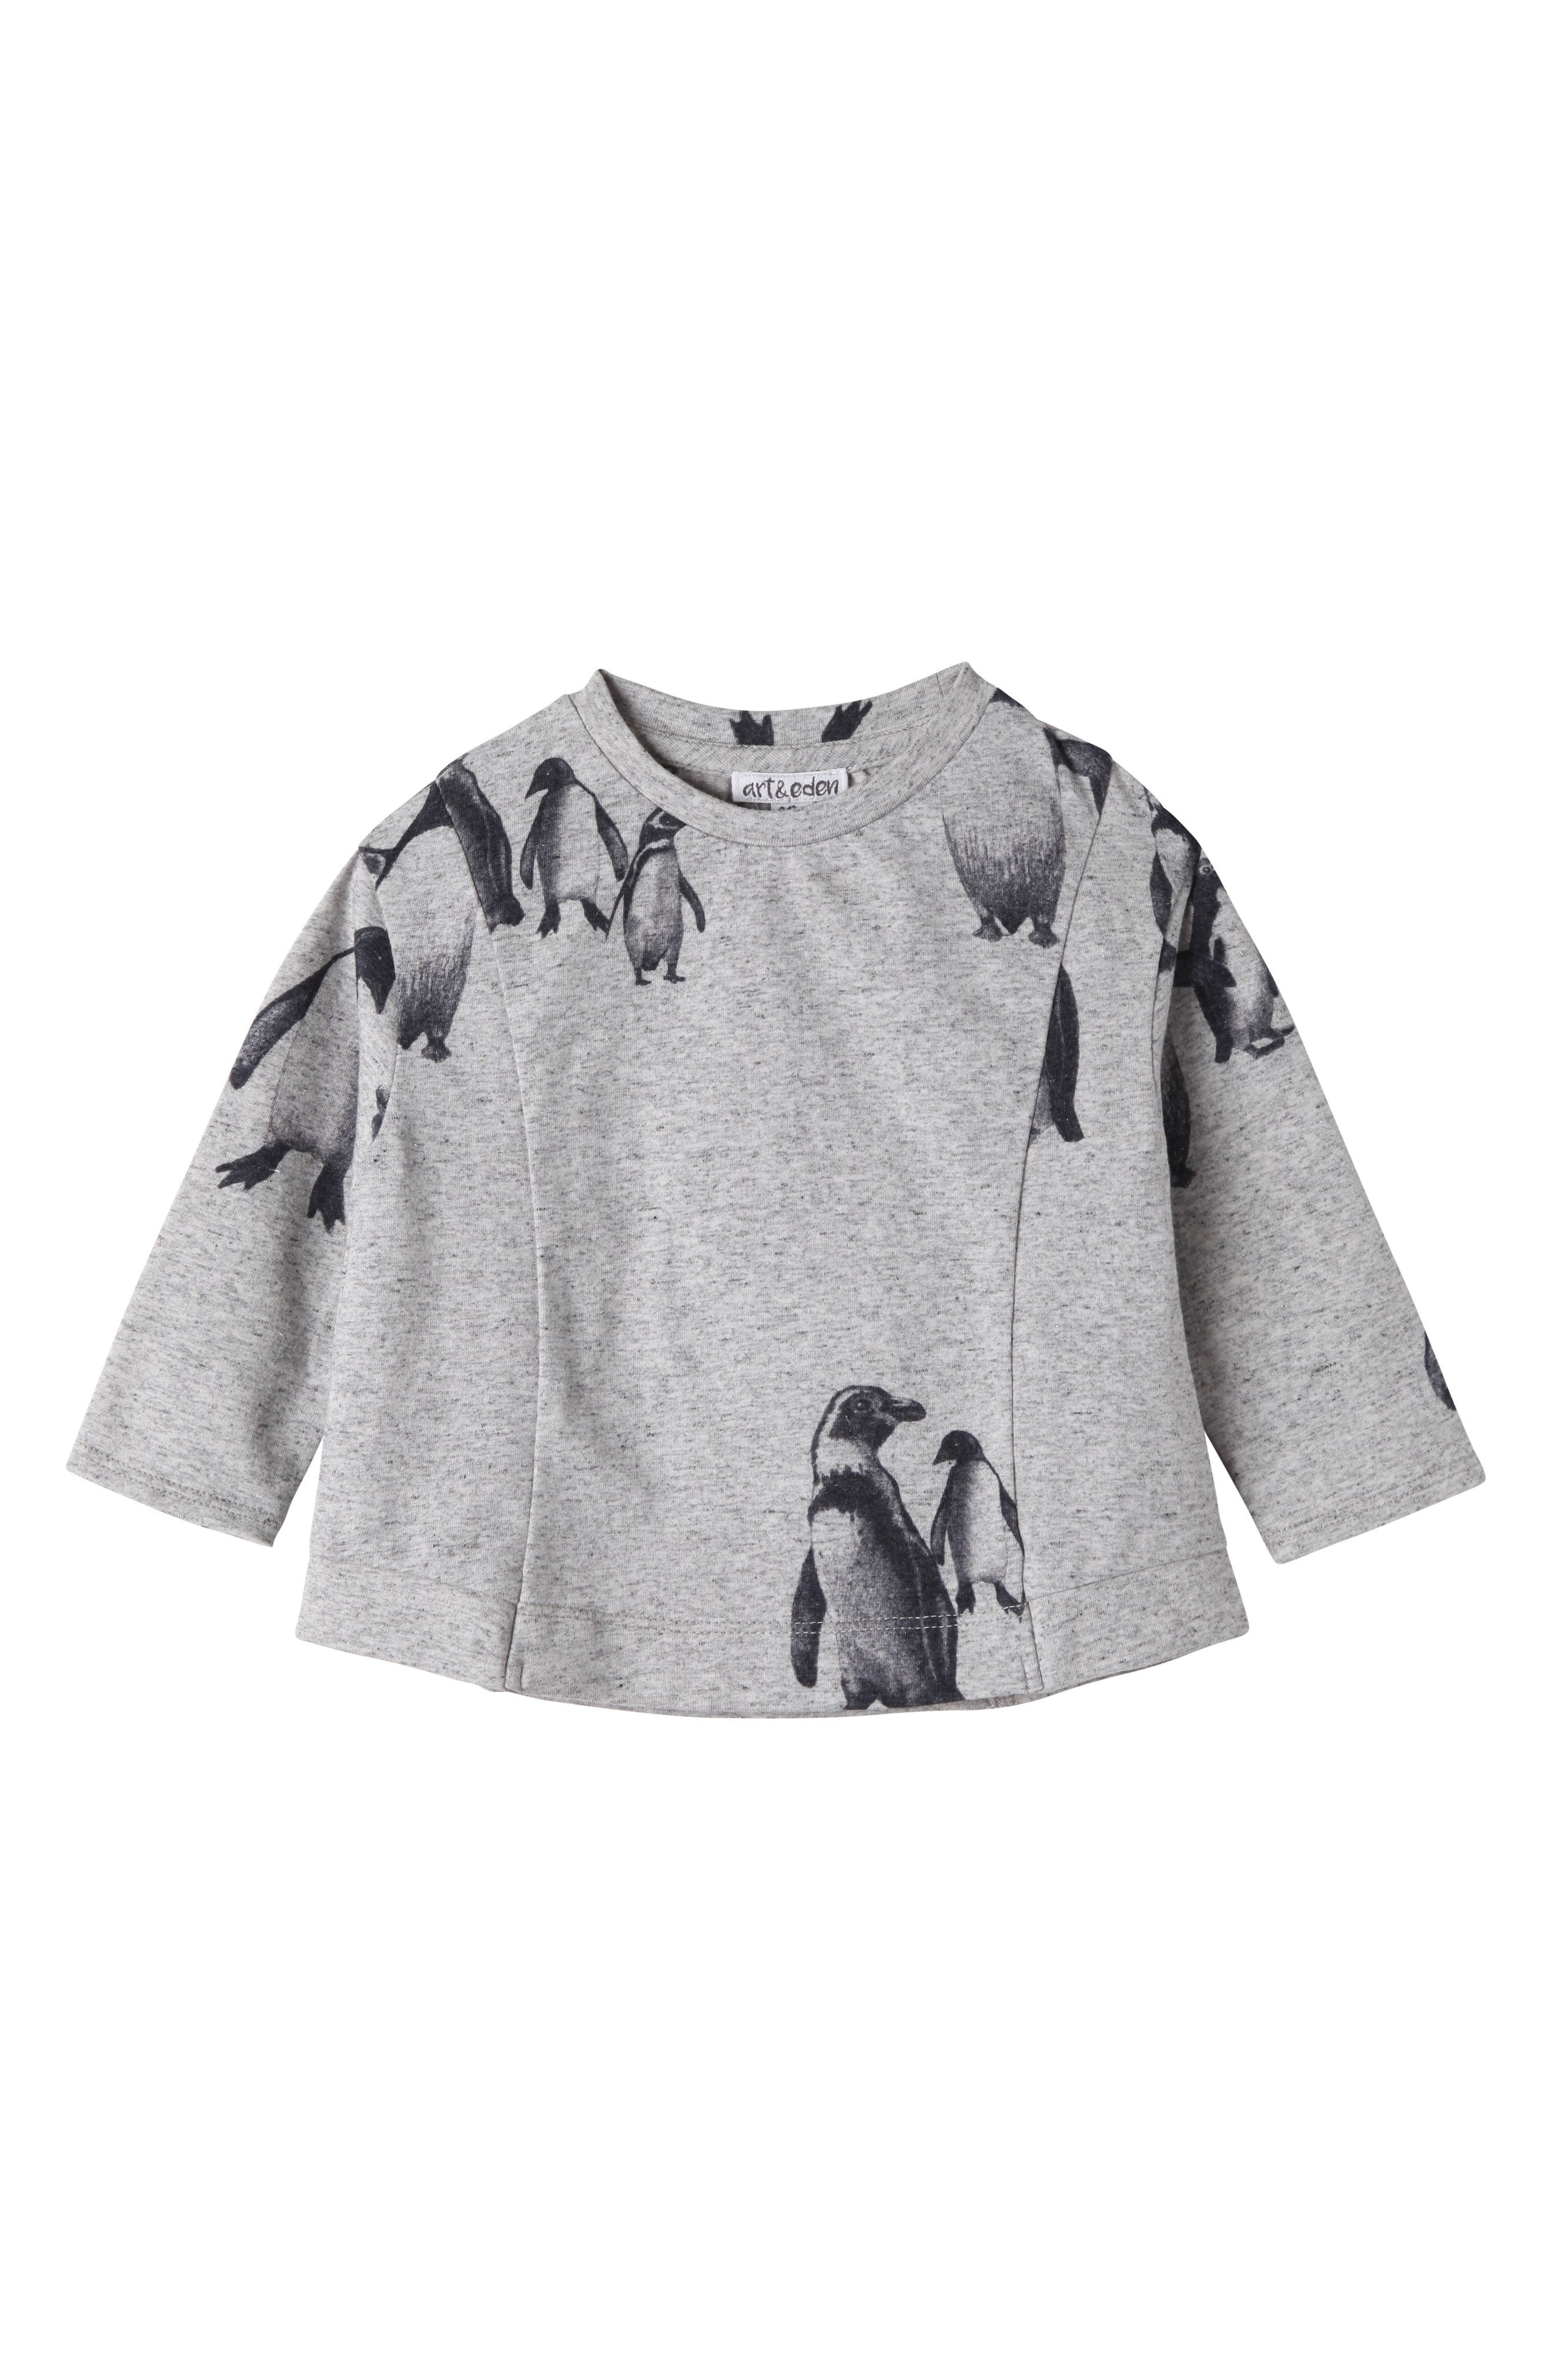 Penguin Graphic Tee,                         Main,                         color, 033